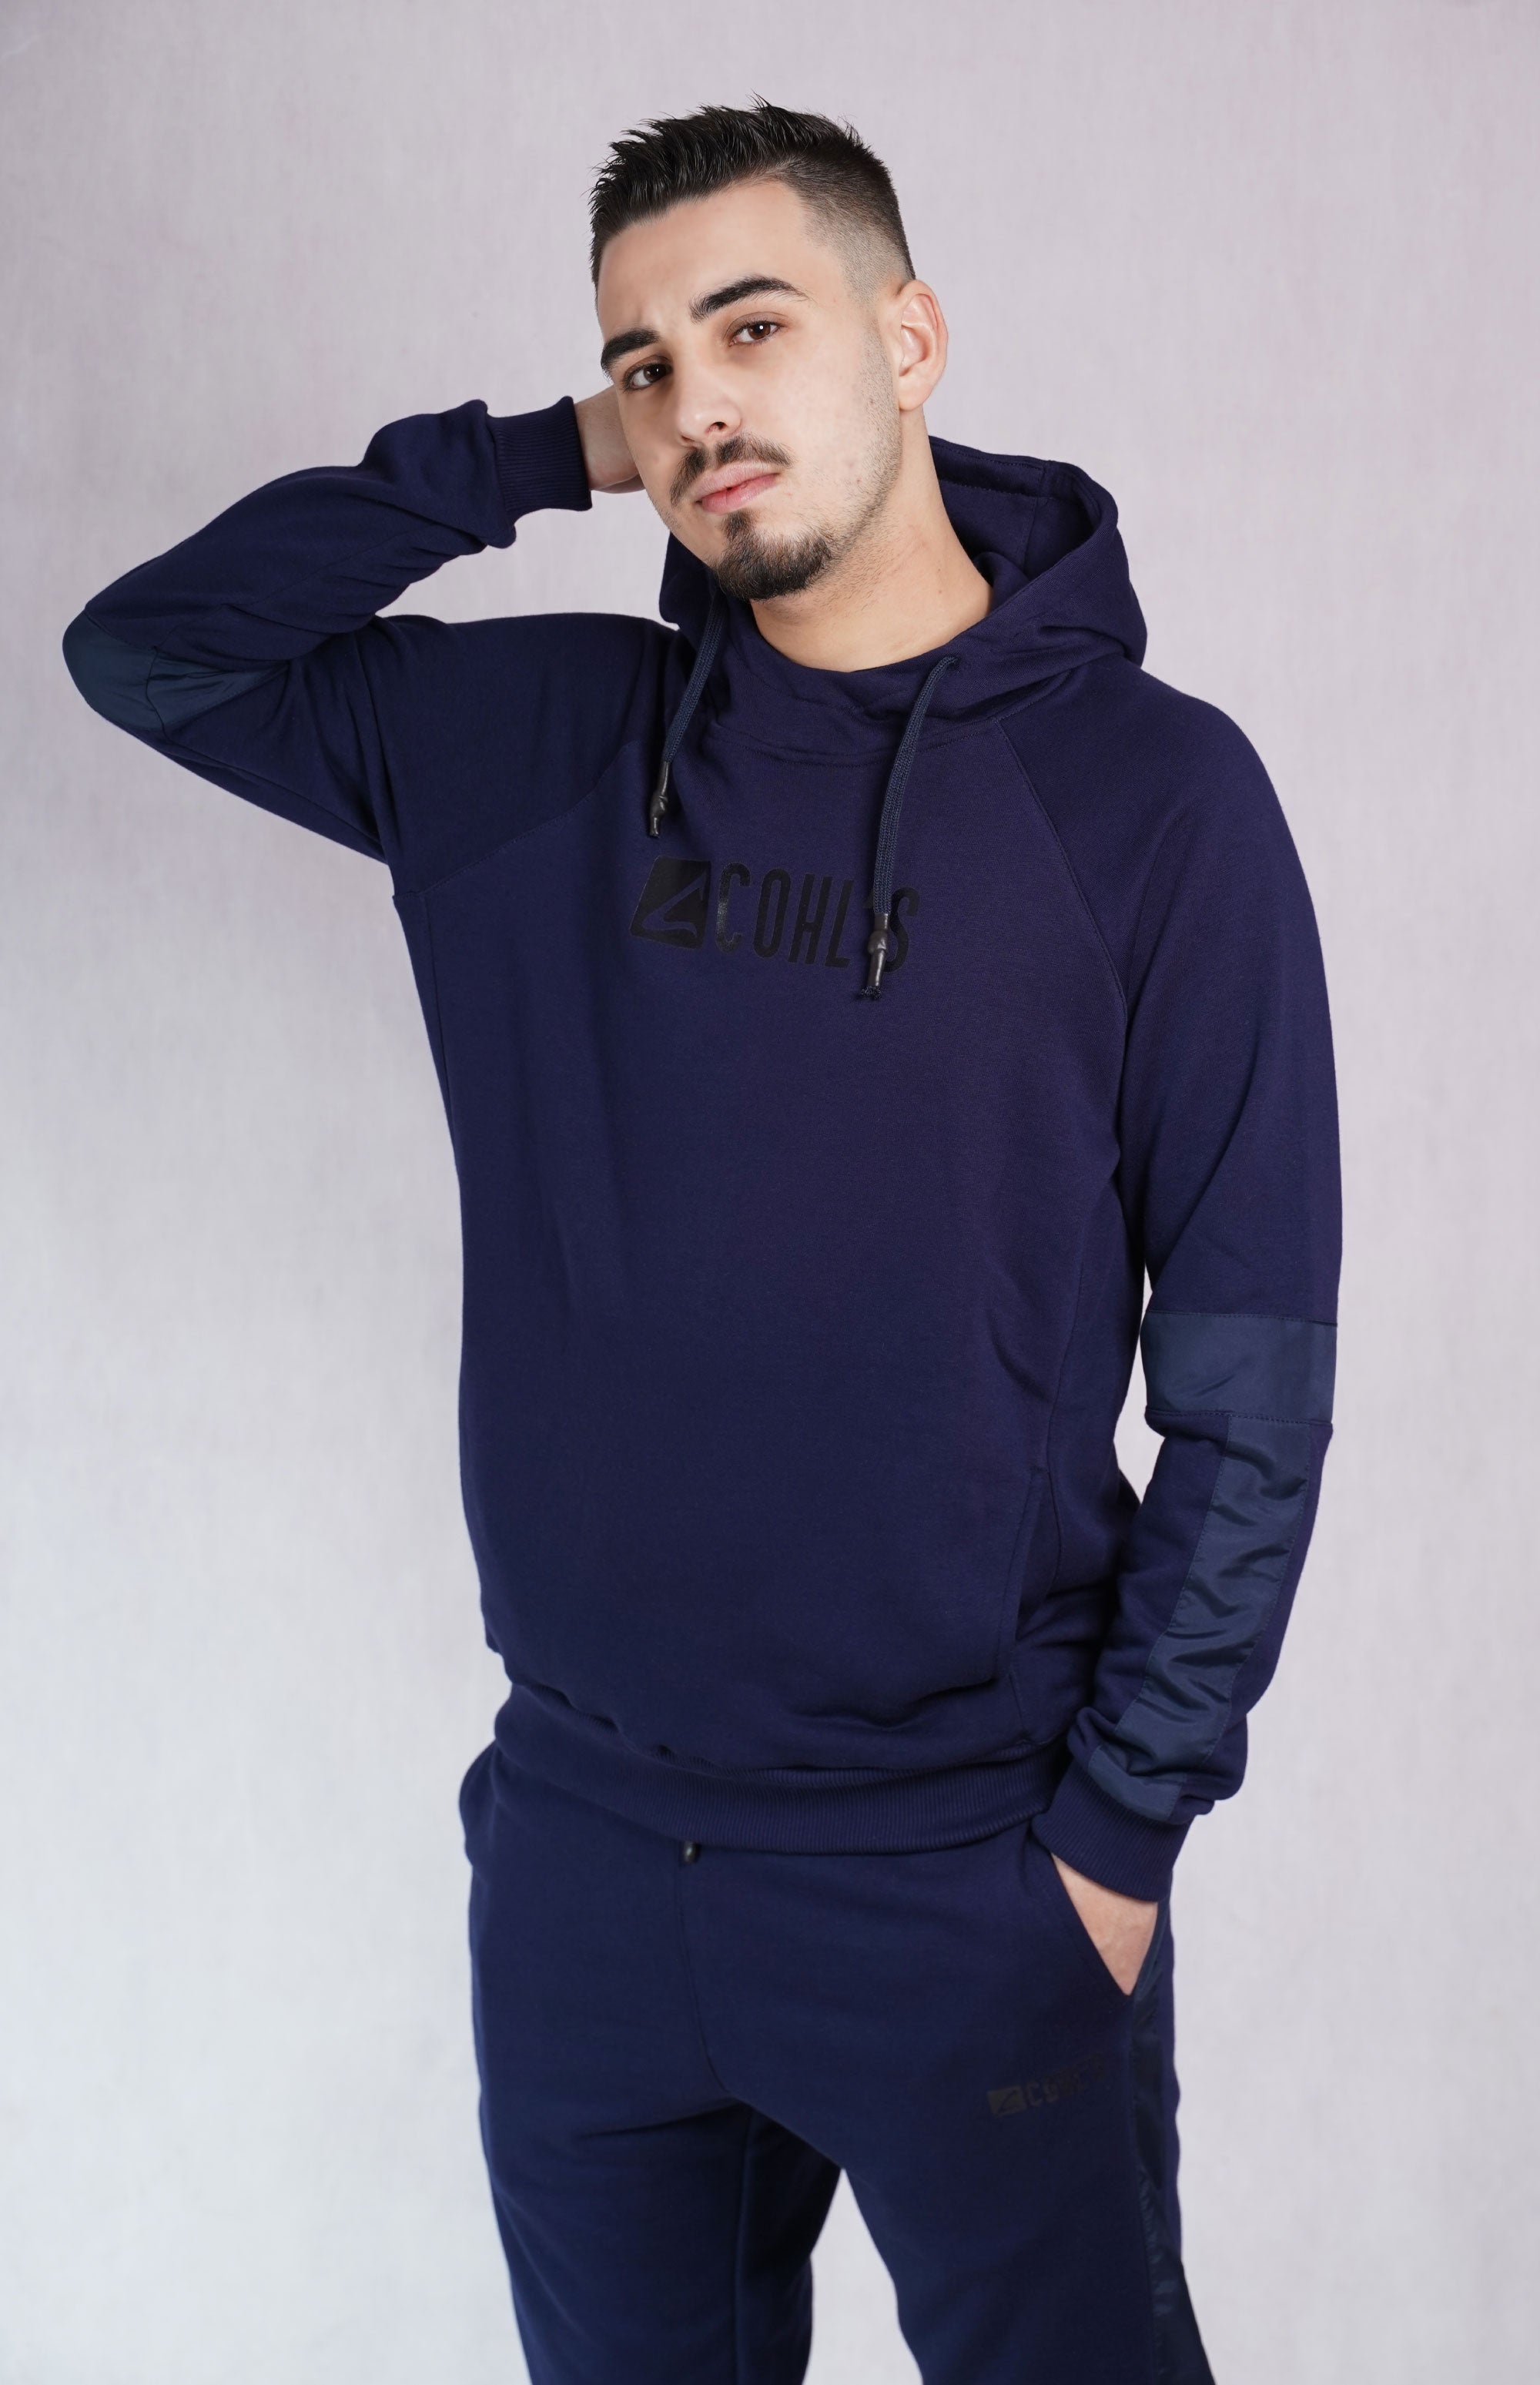 Blue Tracksuit for MEN - C262007-C212011